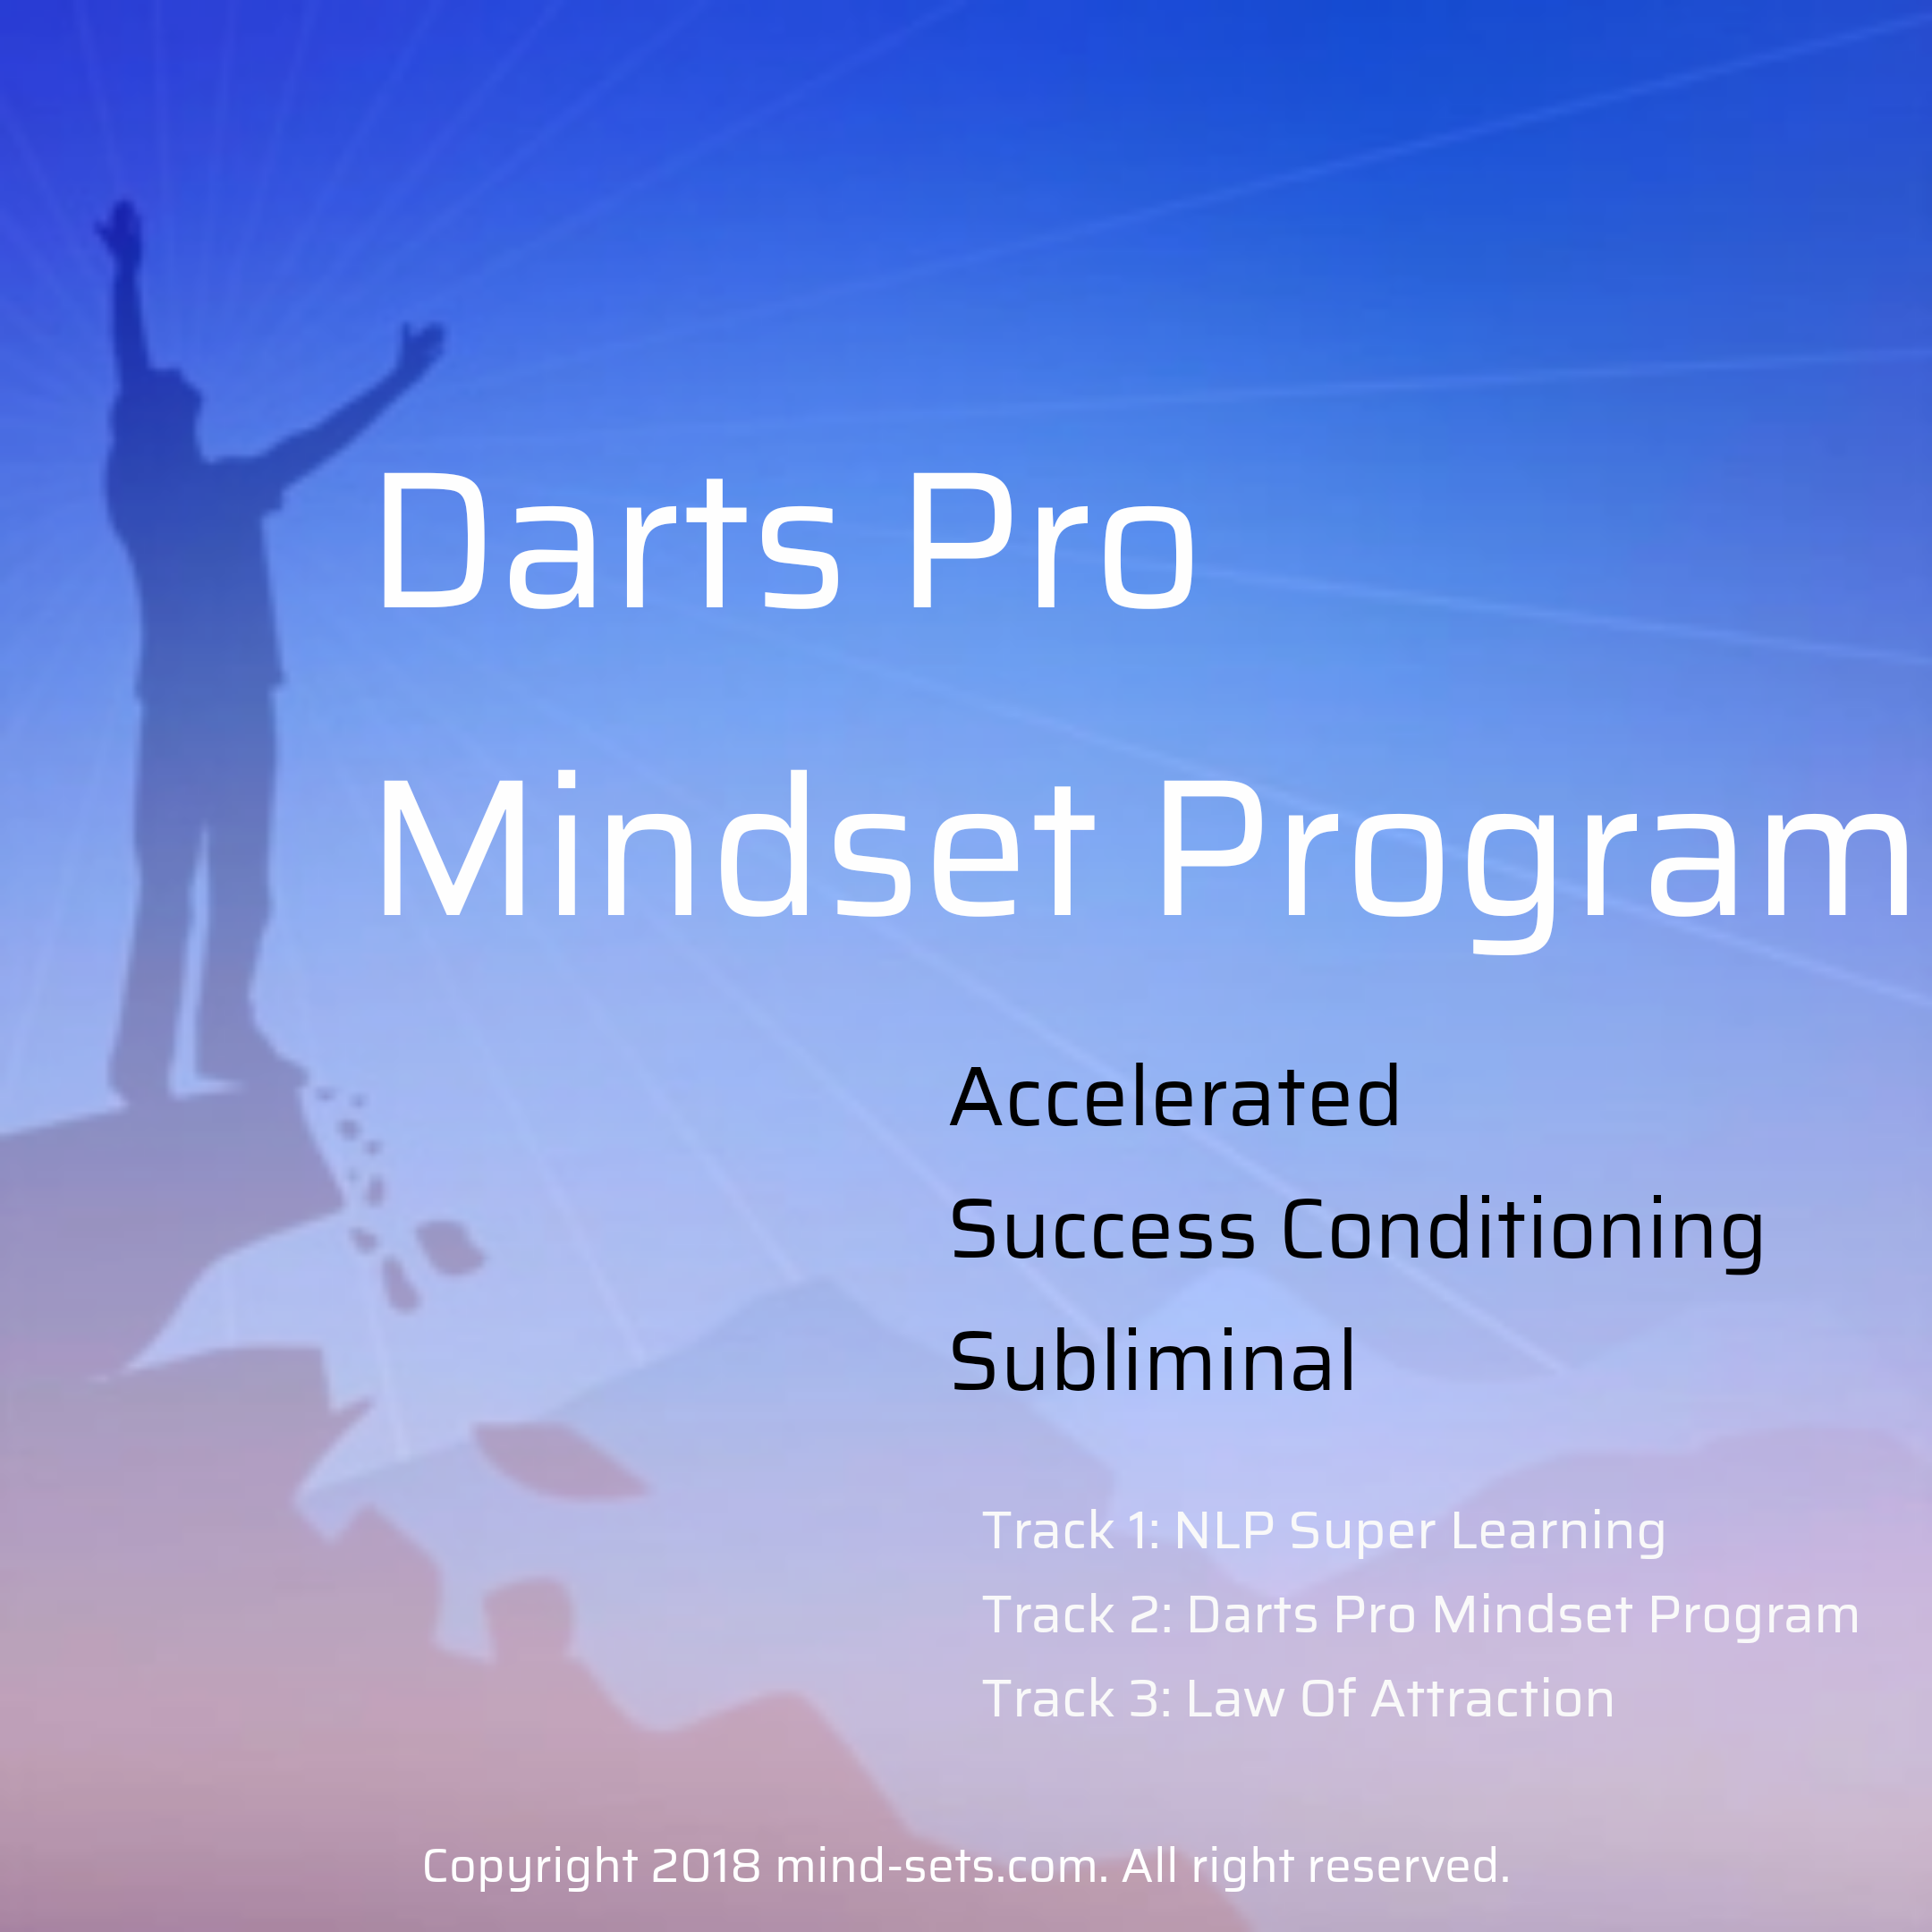 Darts Pro Mindset Program